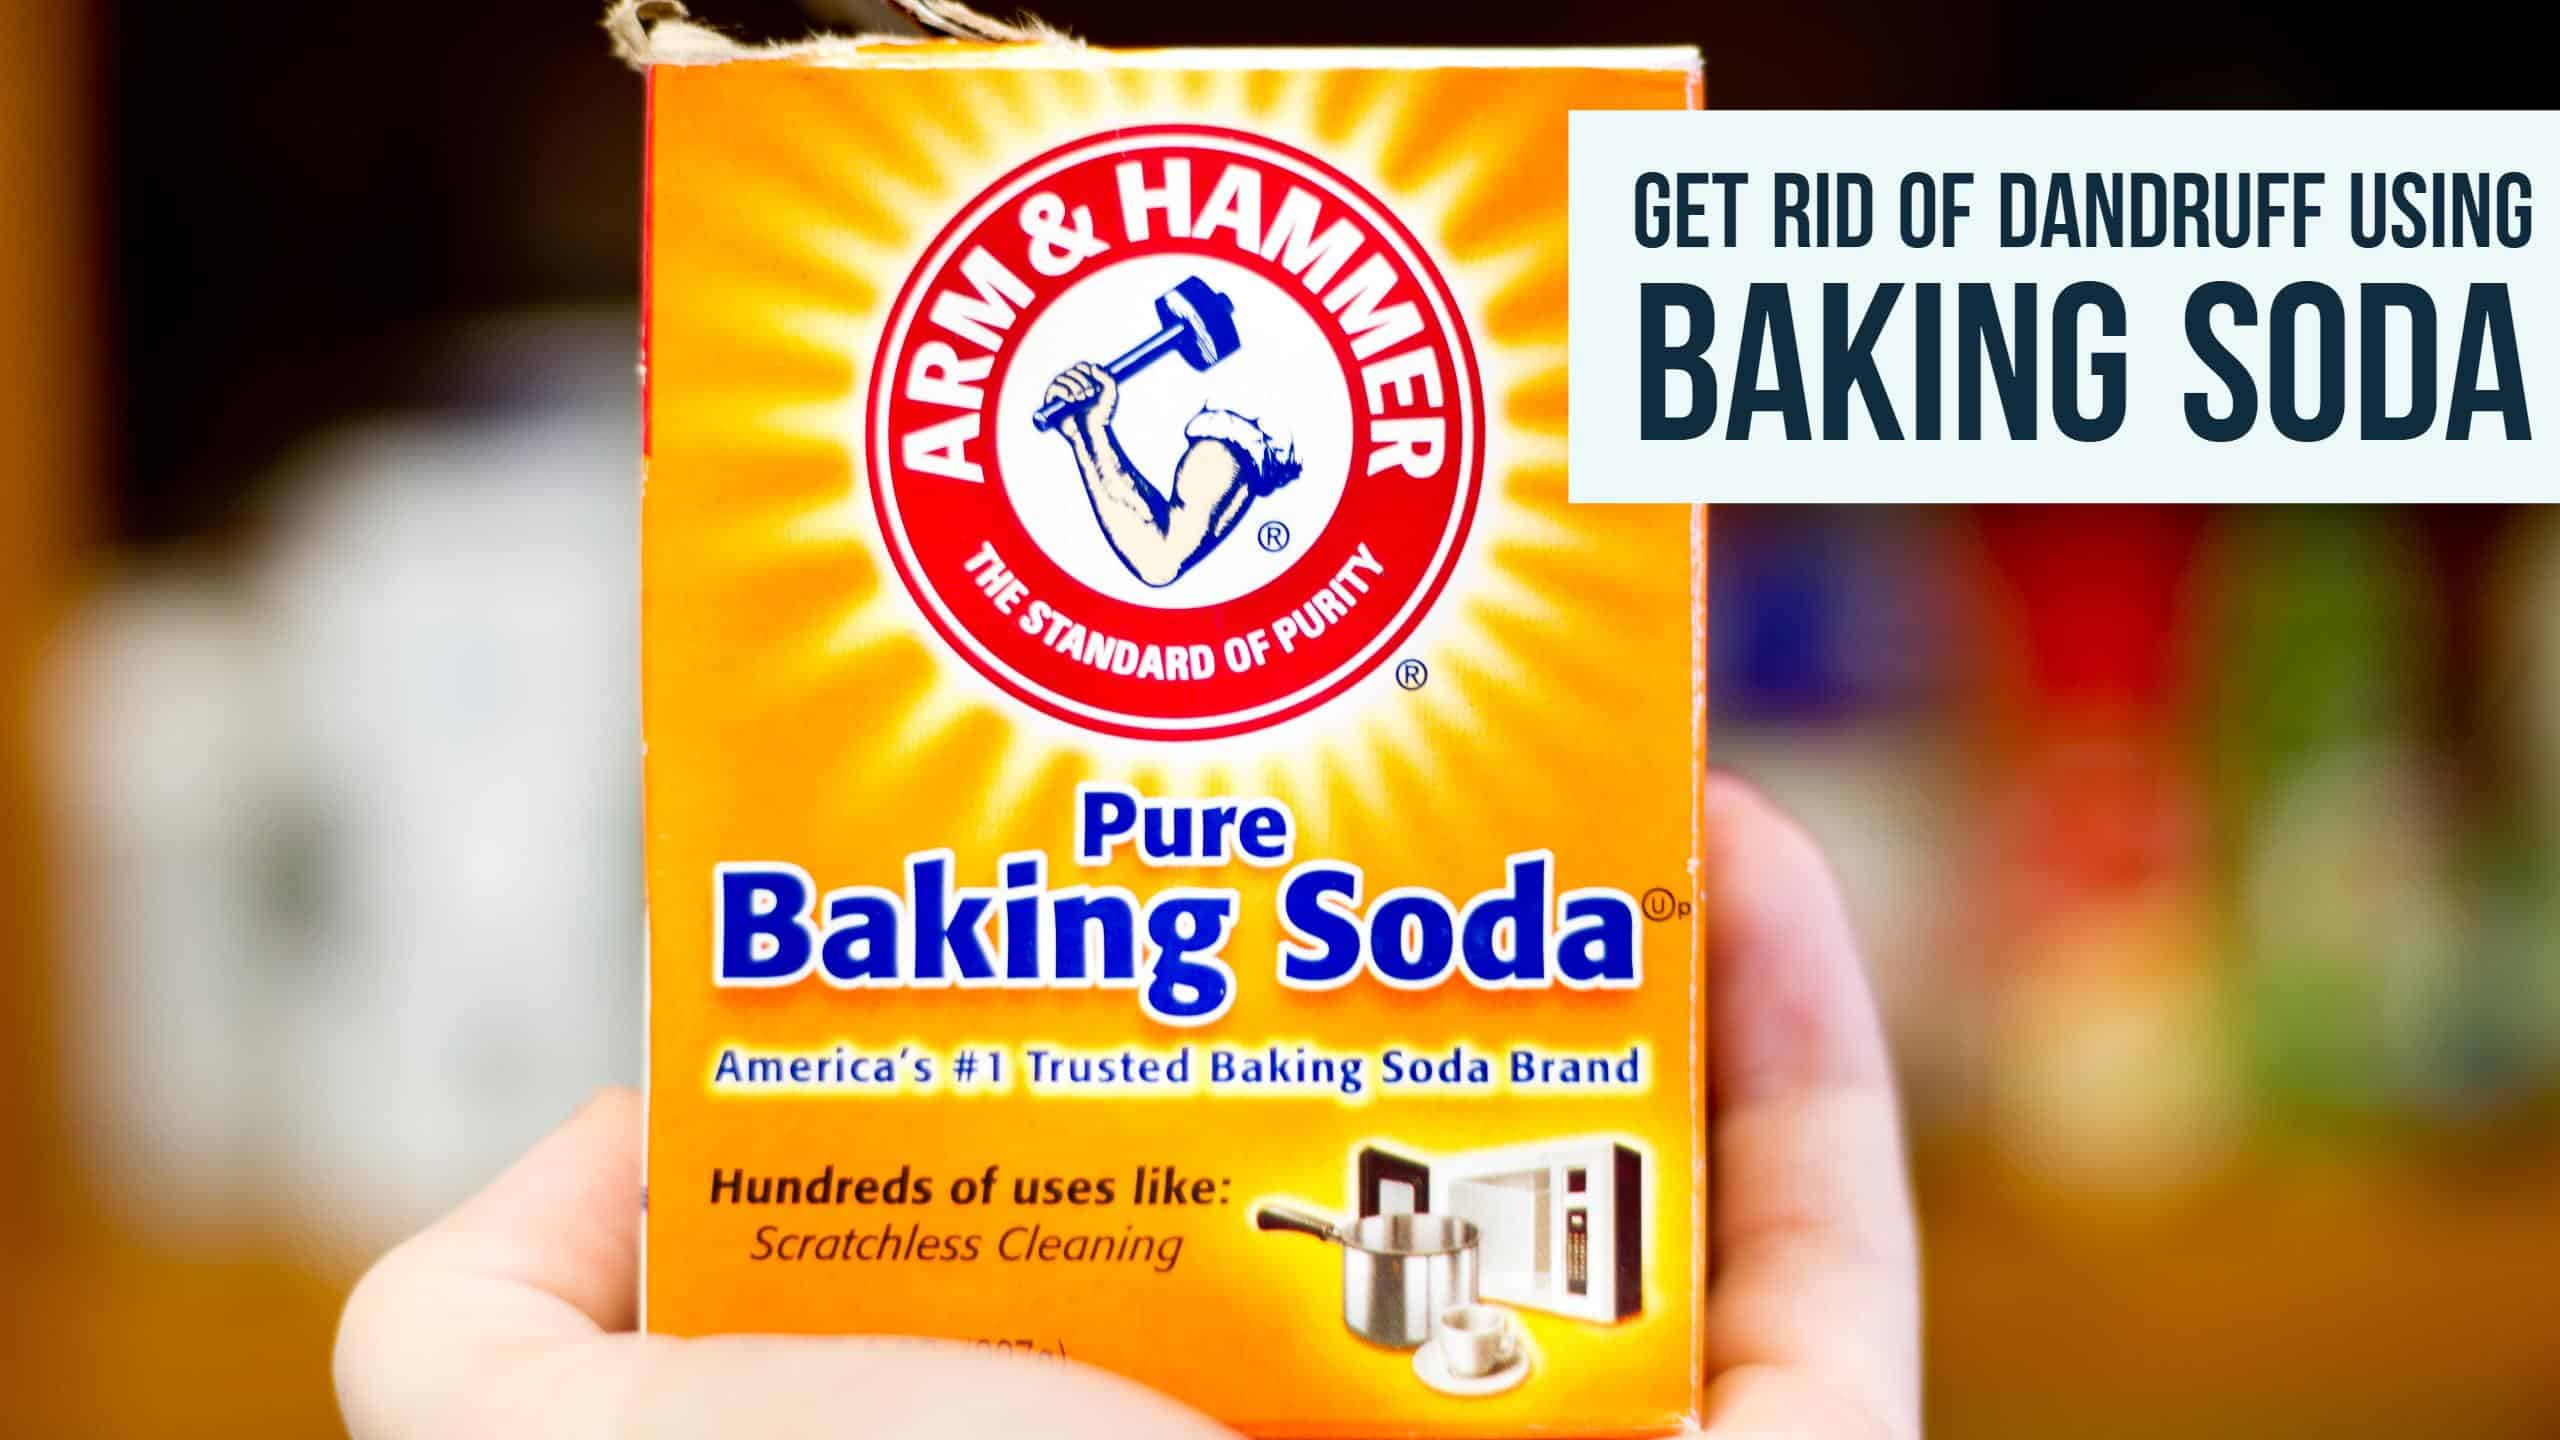 How To Get Rid Of Dandruff Using Baking Soda